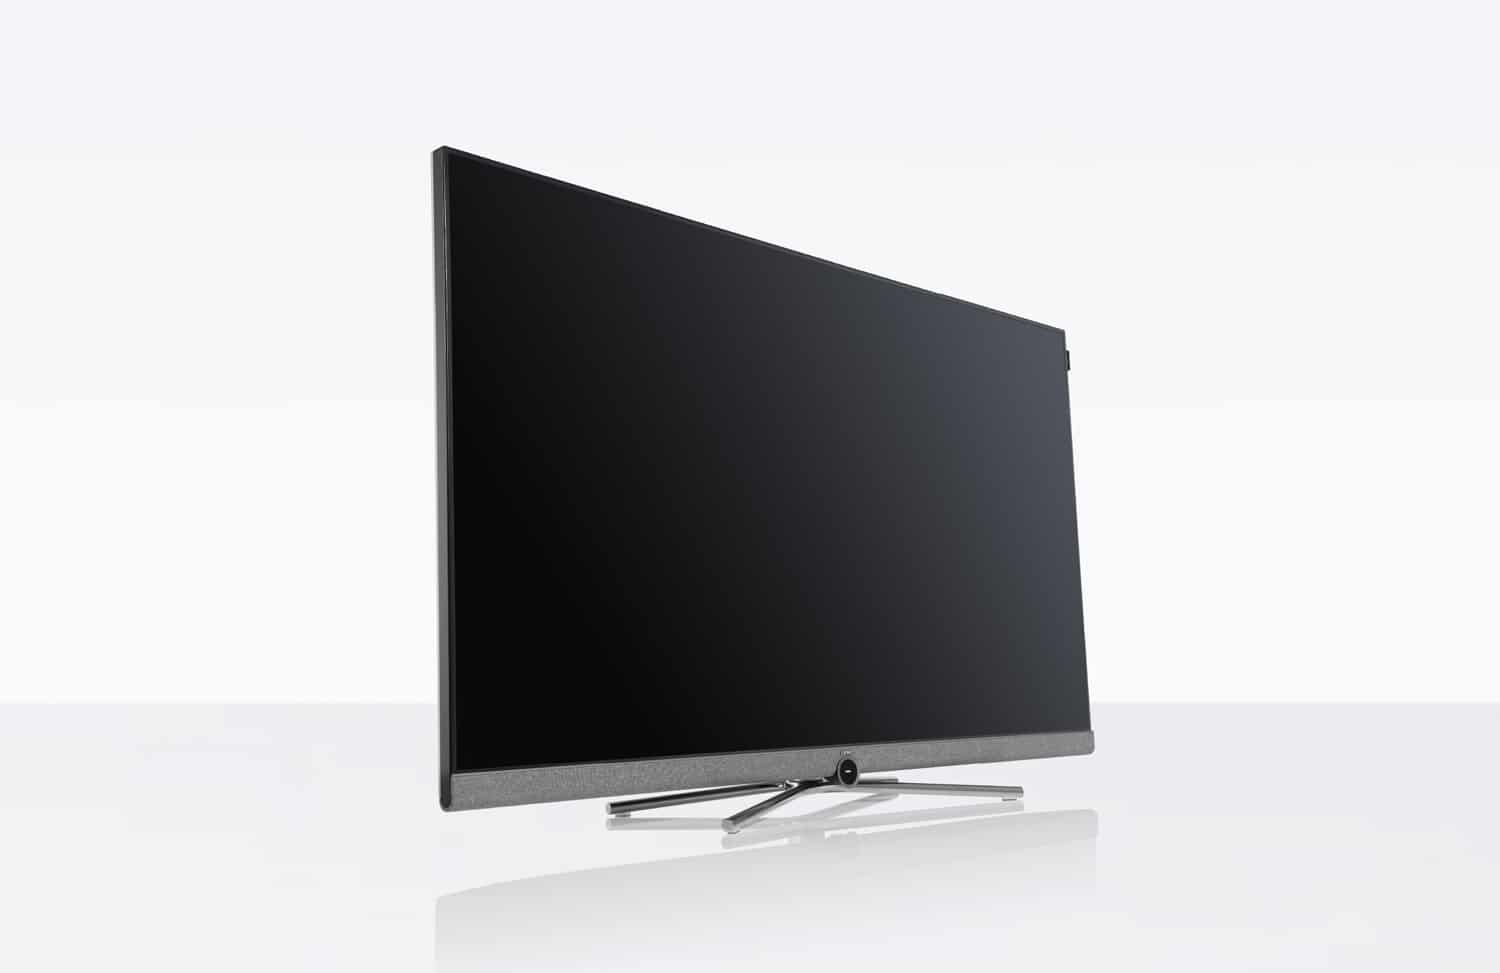 loewe bild 5 uhd tvs erh ltlich in 32 bis 55 zoll ab. Black Bedroom Furniture Sets. Home Design Ideas